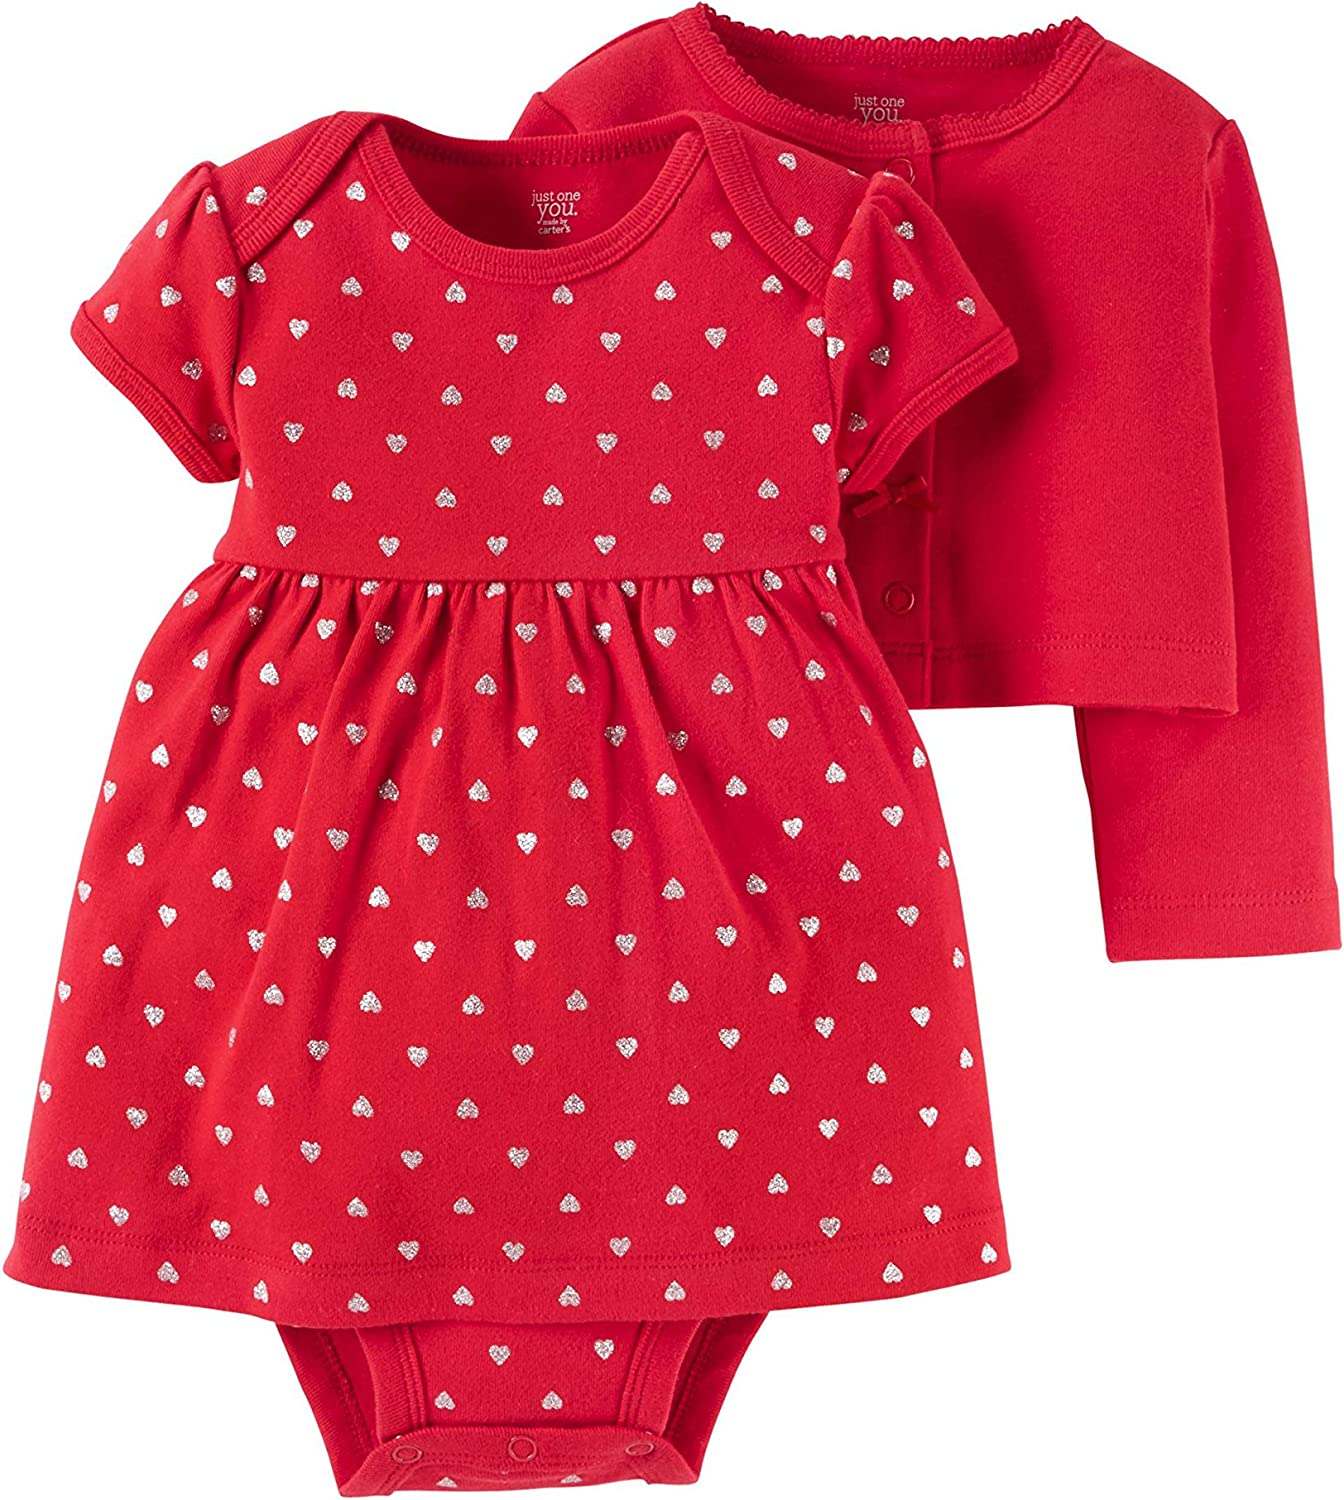 Carters Baby Girls 2 Piece Heart Print Cardigan Set